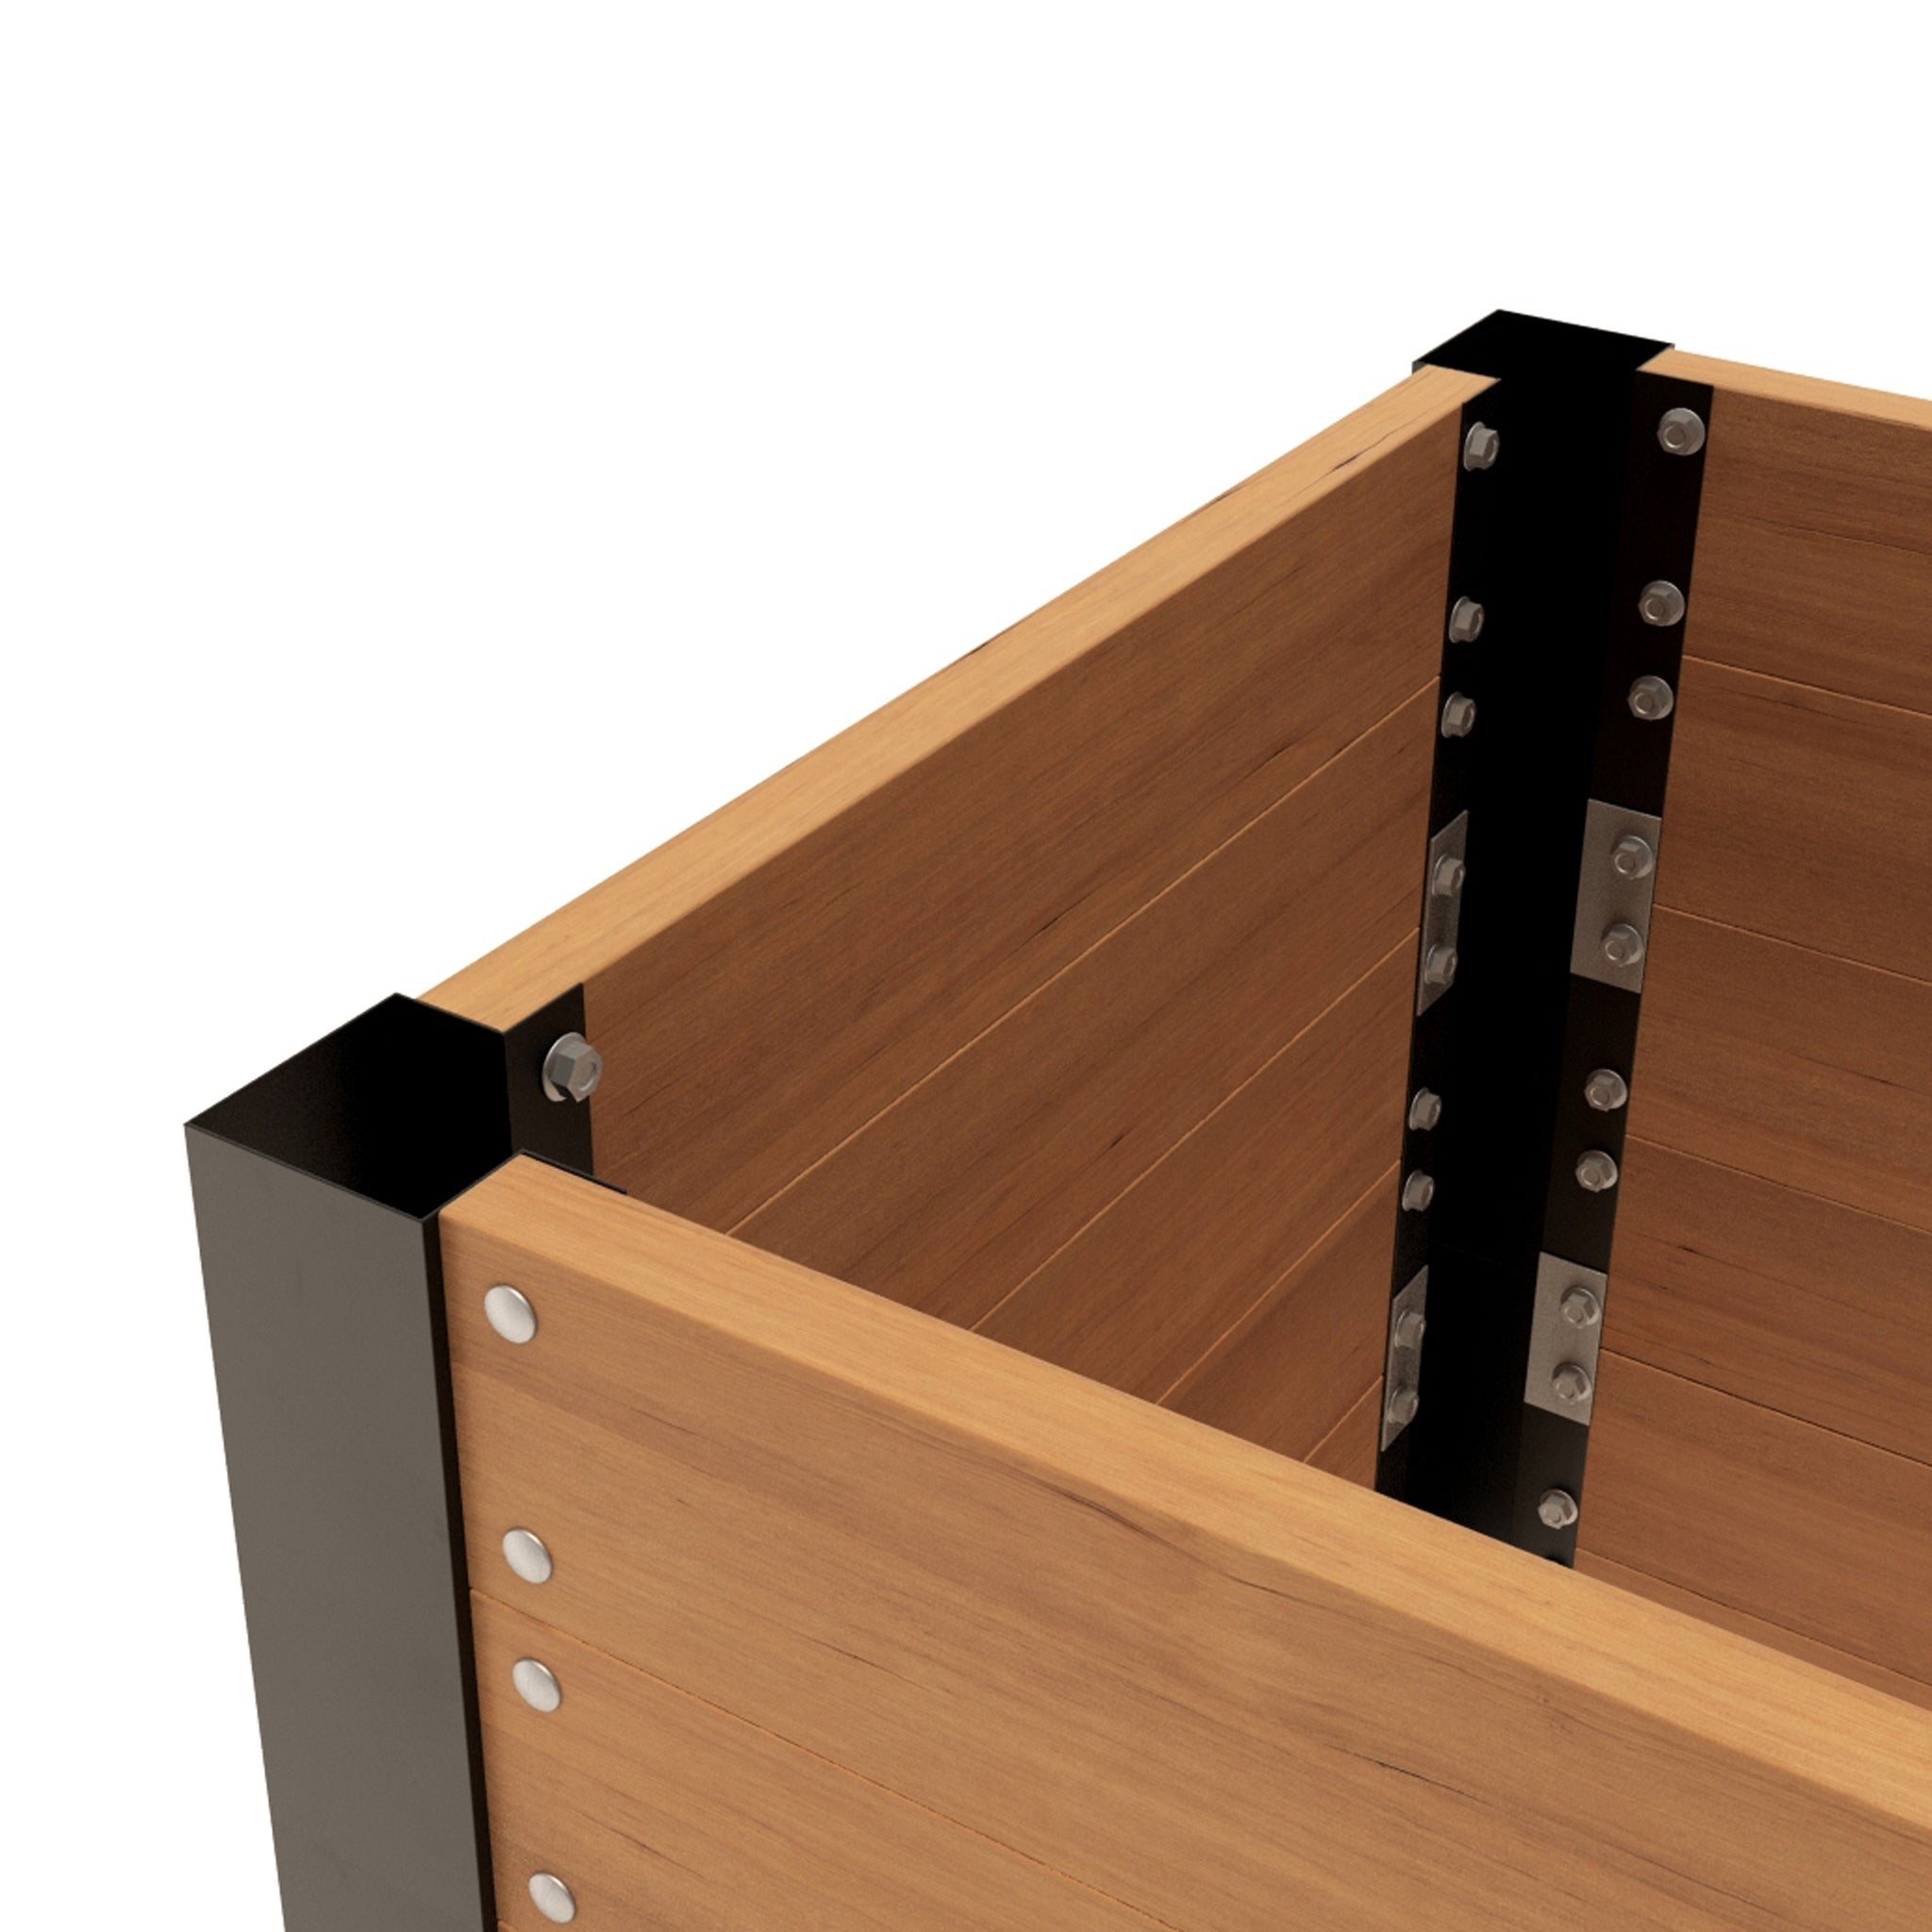 "LIFTED EARTH GARDEN BOX HARDWARE - 33"" CORNER BRACKET KIT WITH SPIKES"